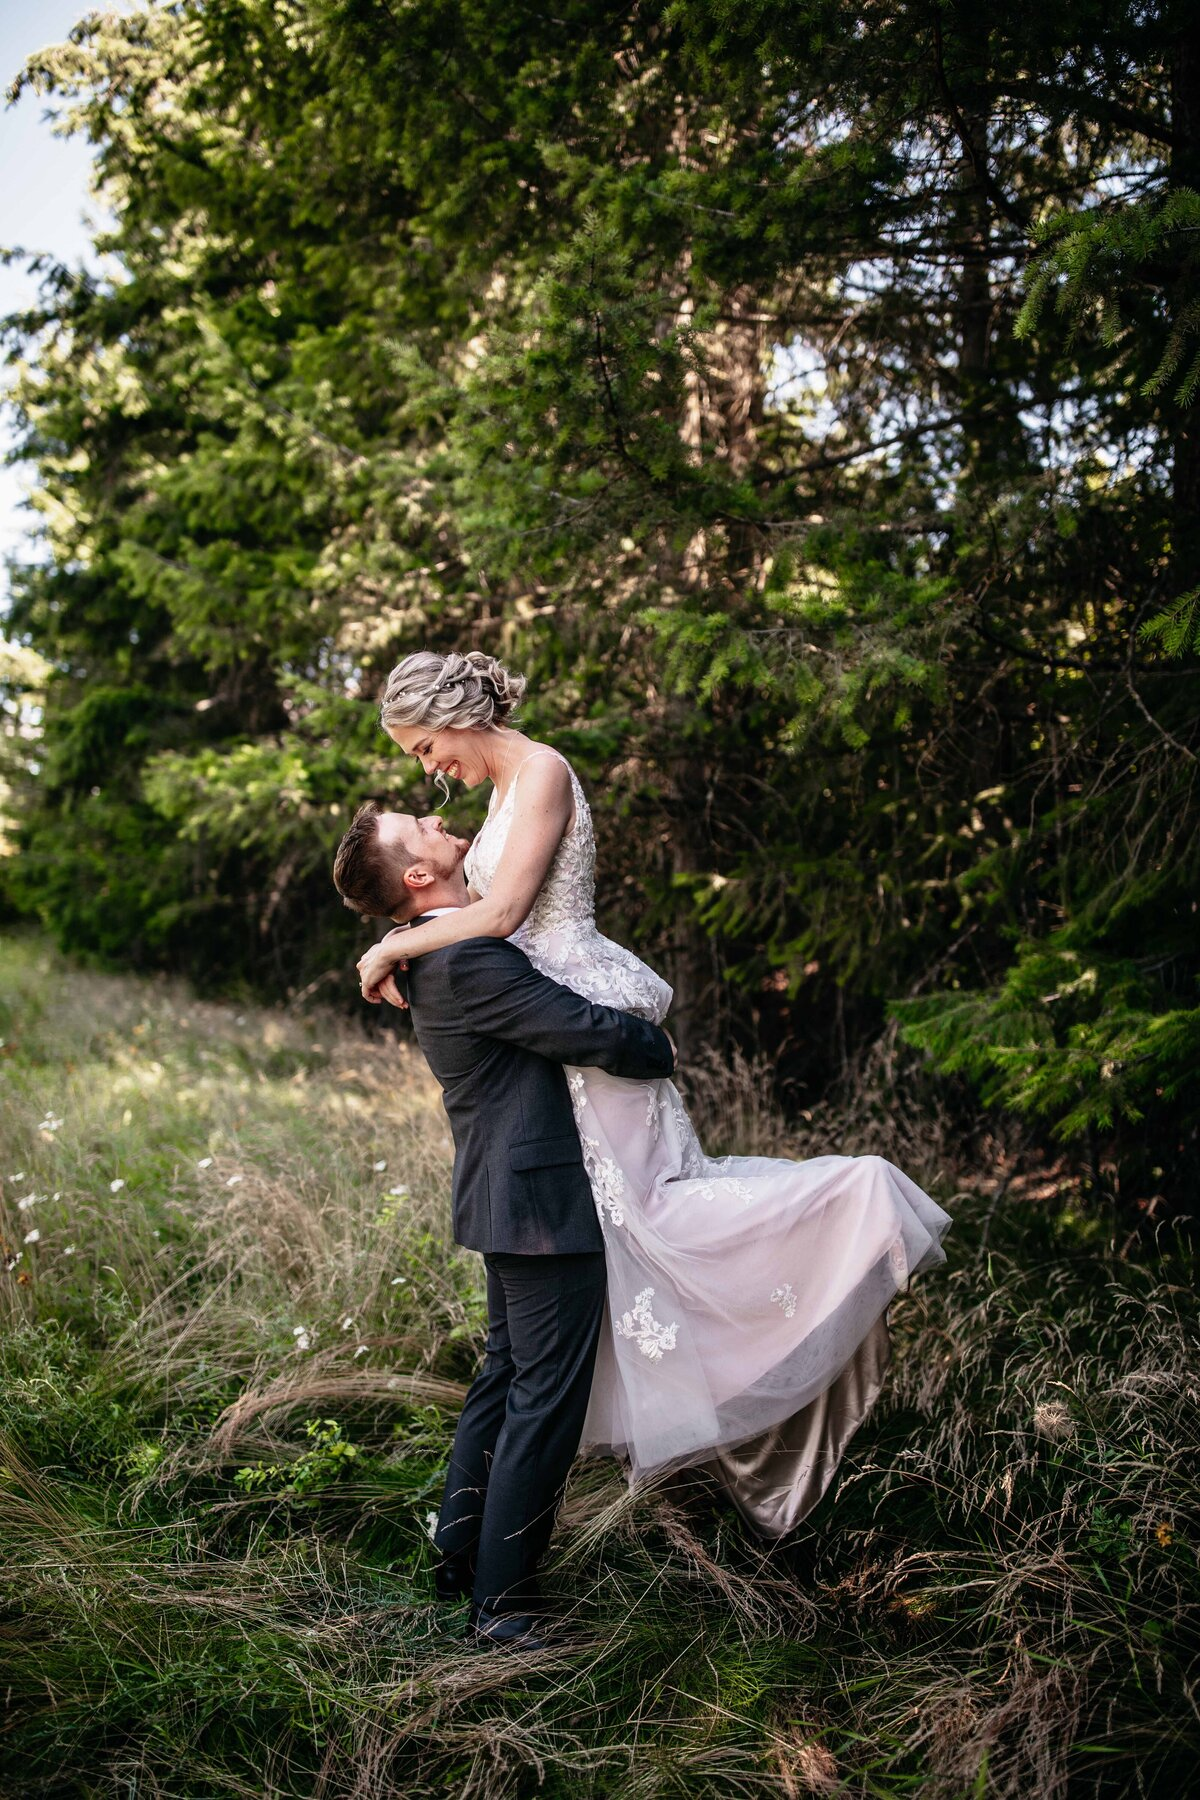 Wedding Photographers in Spokane Washington, Adventurous Elopement Photographer - Clara Jay Photo